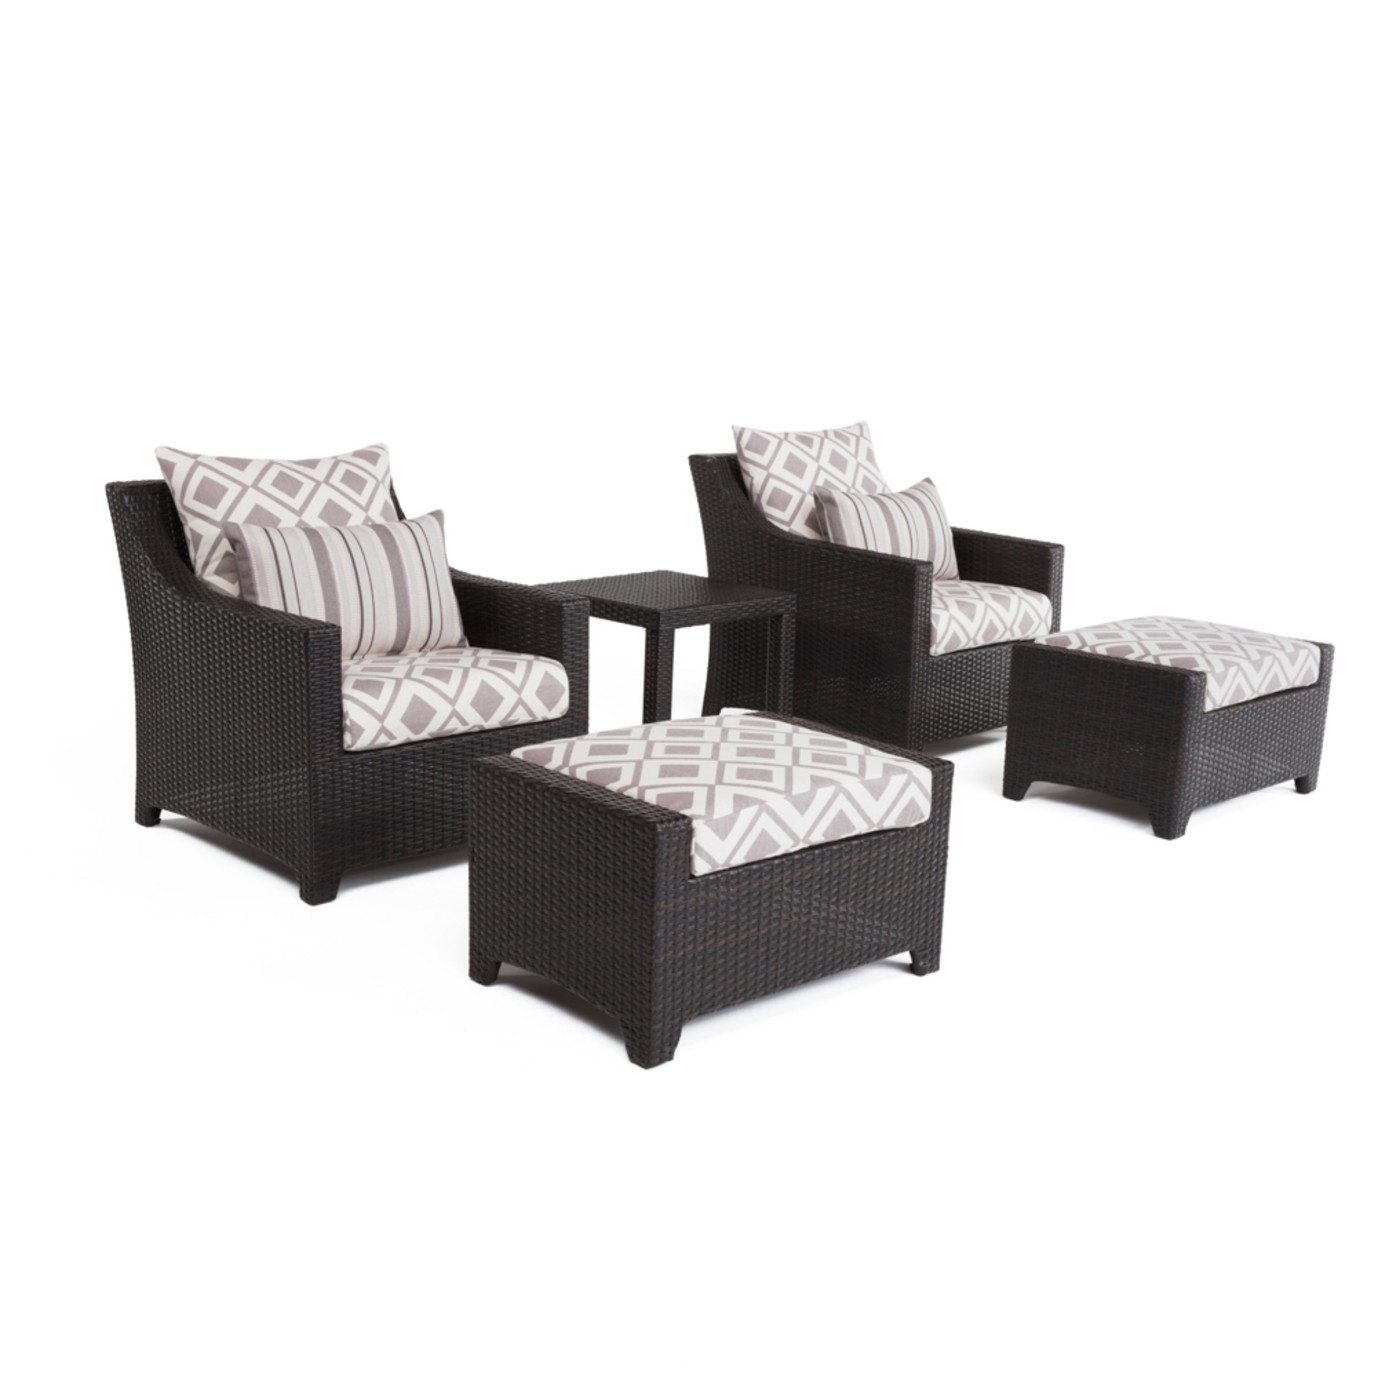 Deco™ 5pc Club Chair & Ottoman Set - Wisteria Lavender